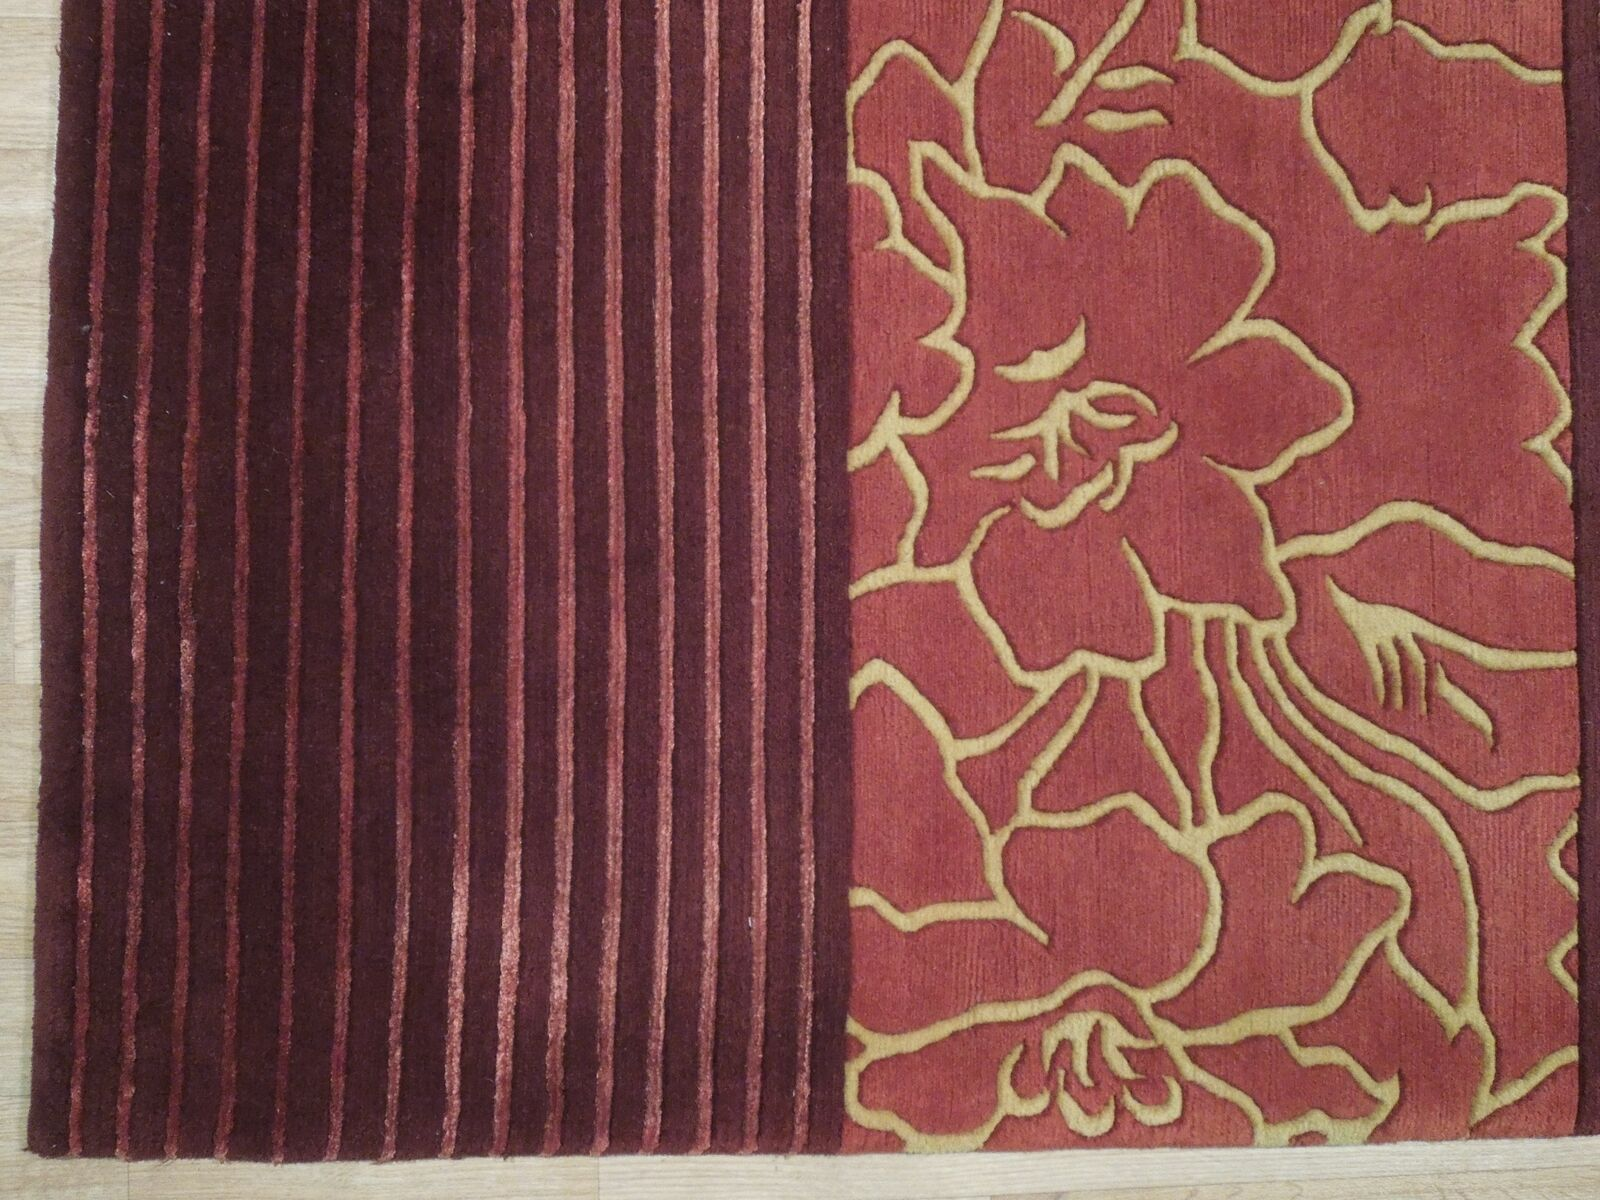 Abstract Shades of Red Gold stripes Handmade 6 x 8 Red Modern Wool & Silk Rug image 7